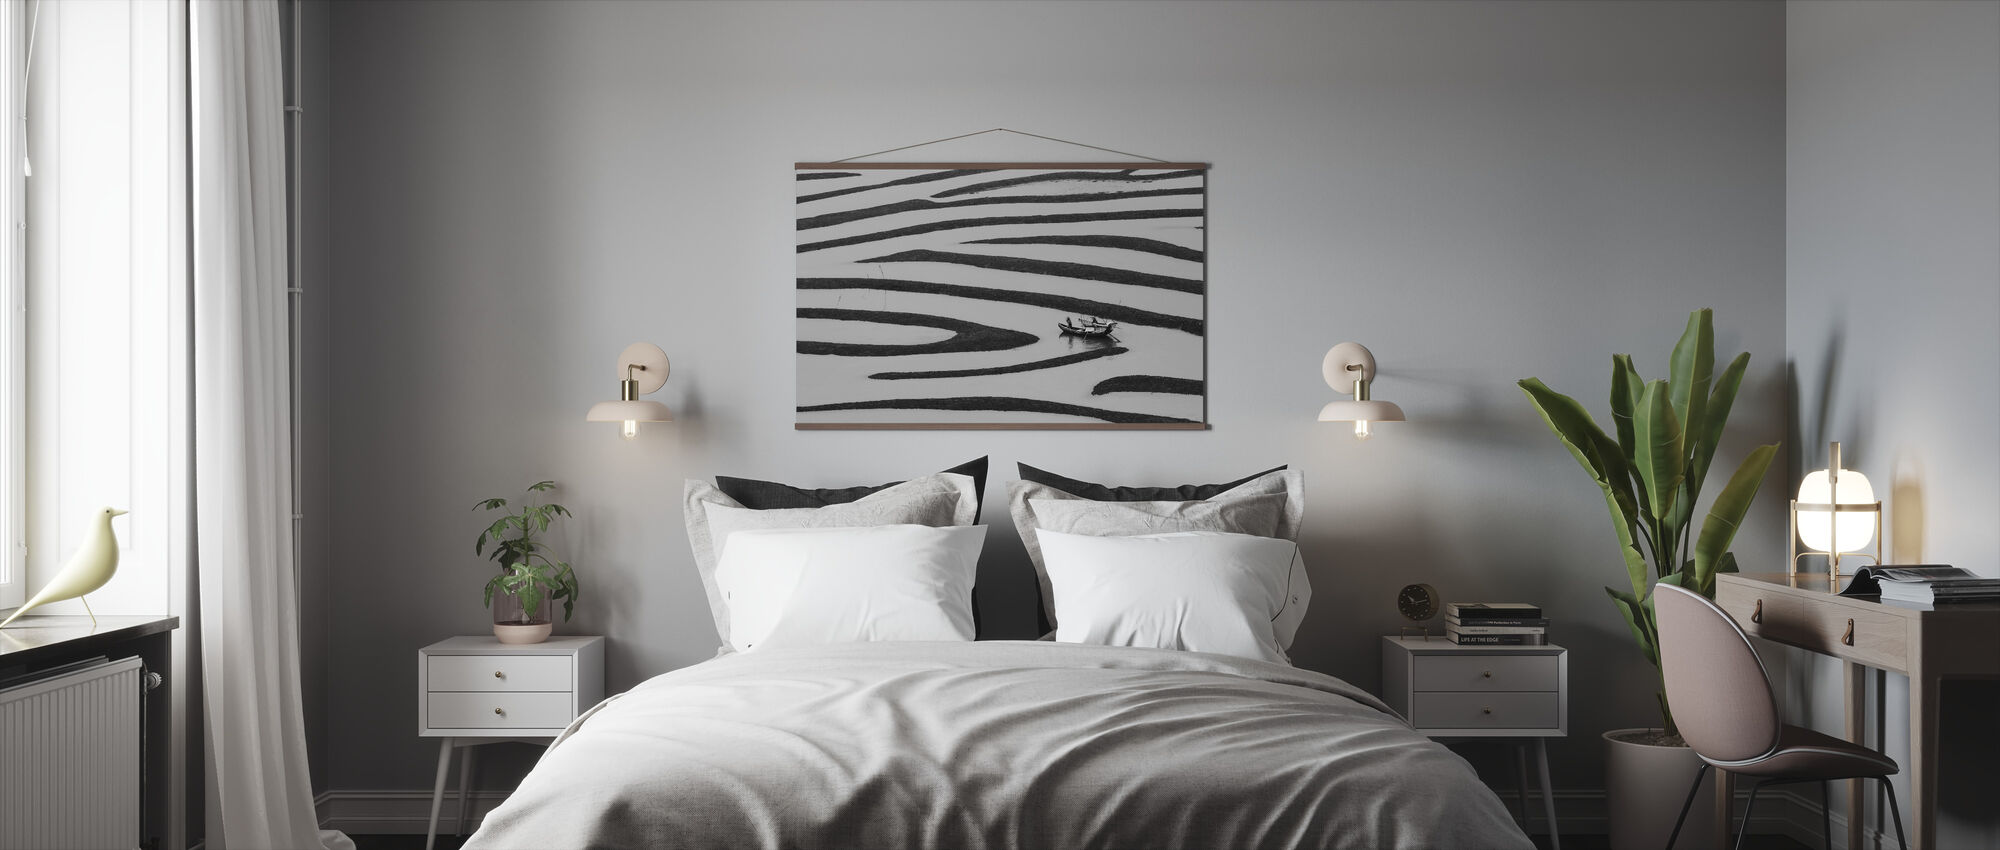 The Beauty of Simple Life, black and white - Poster - Bedroom